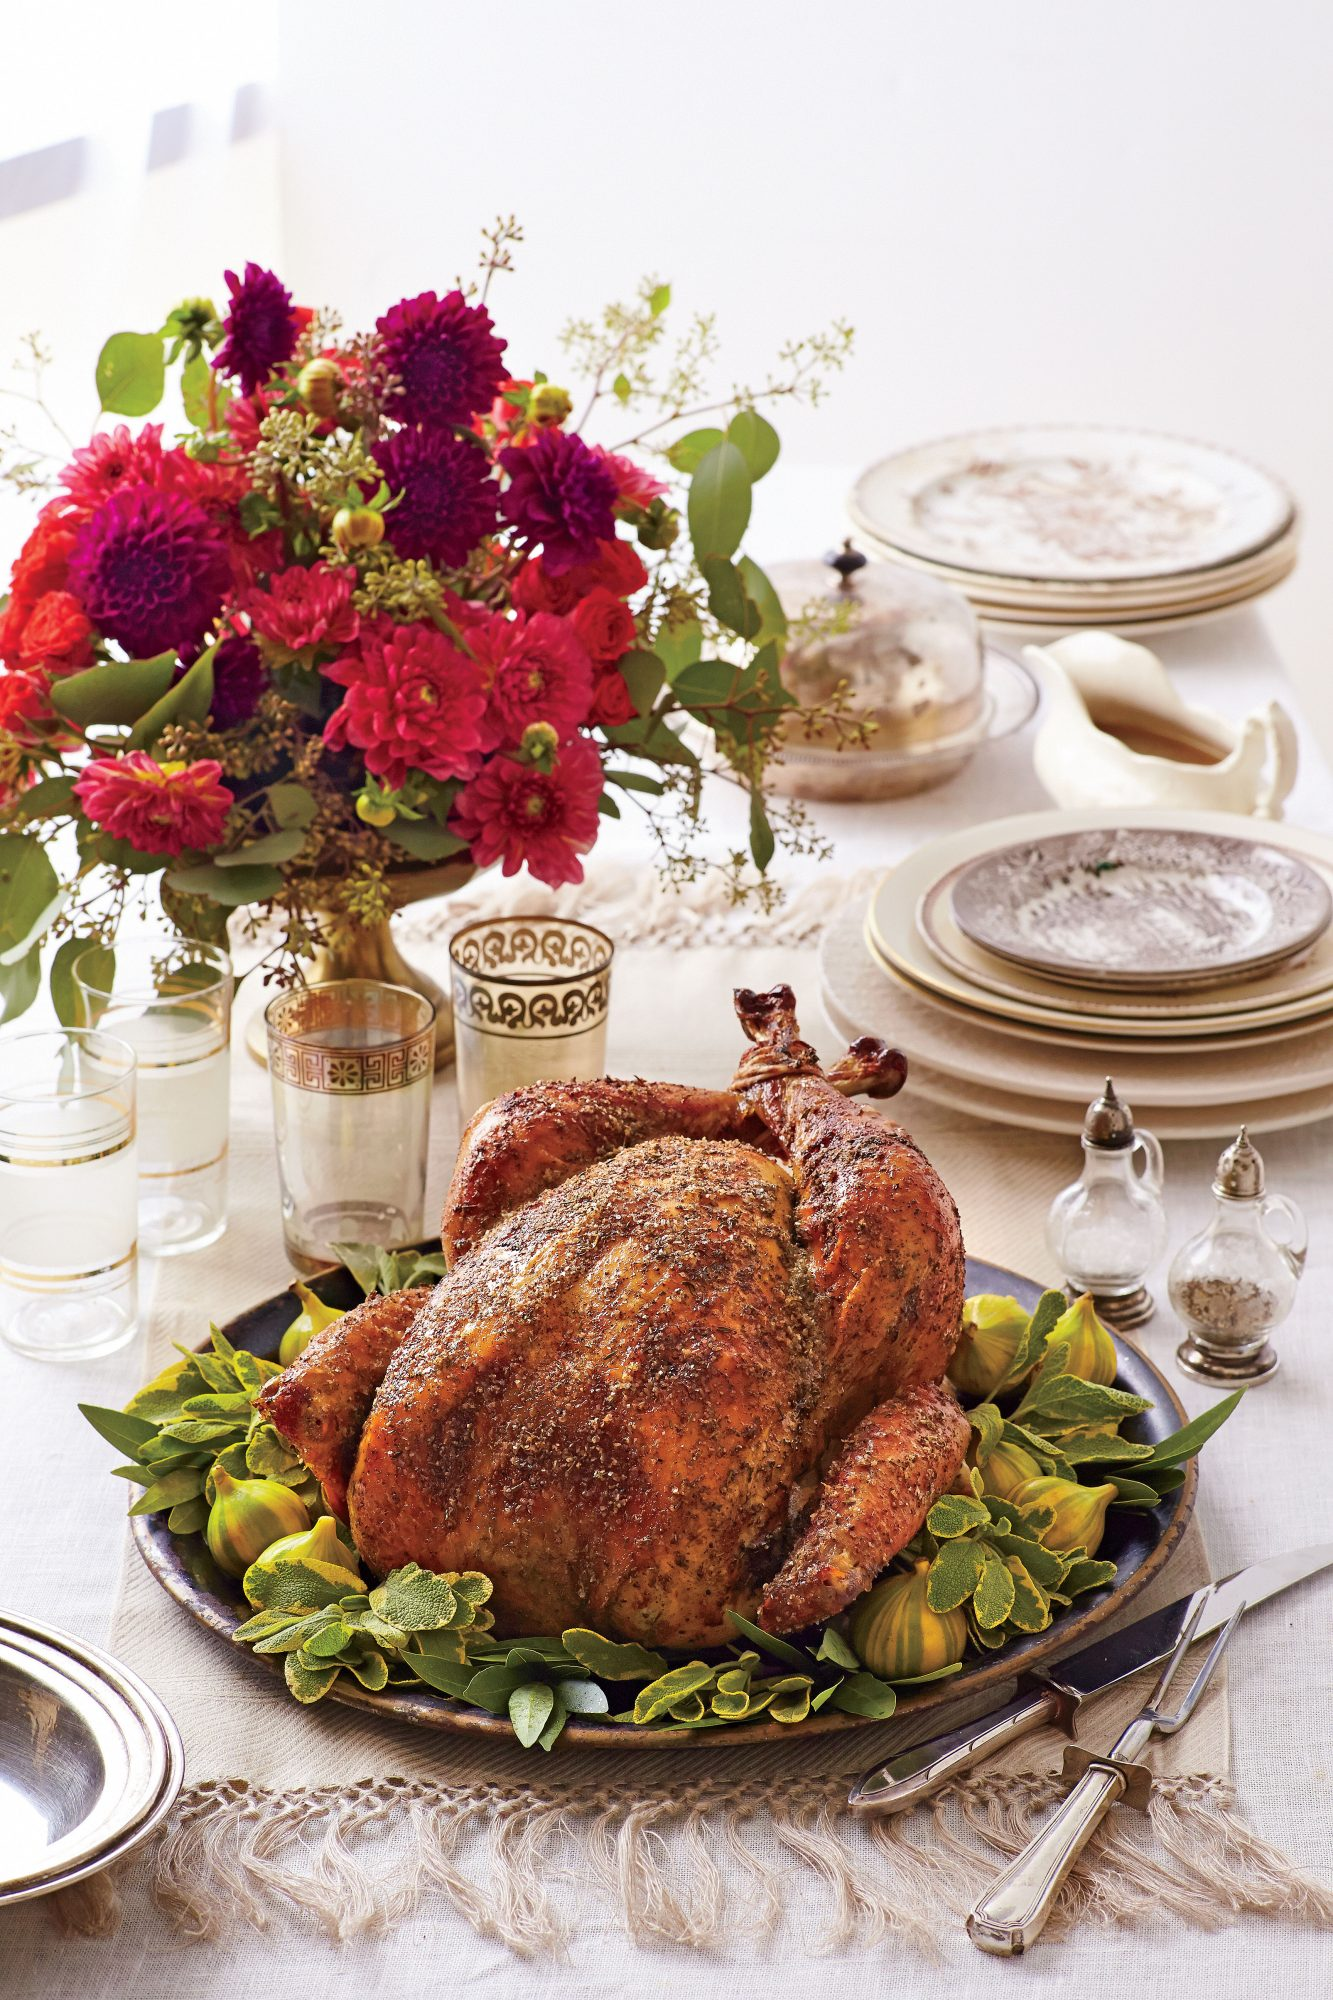 Dry Brined-Herb Roasted Turkey Recipe